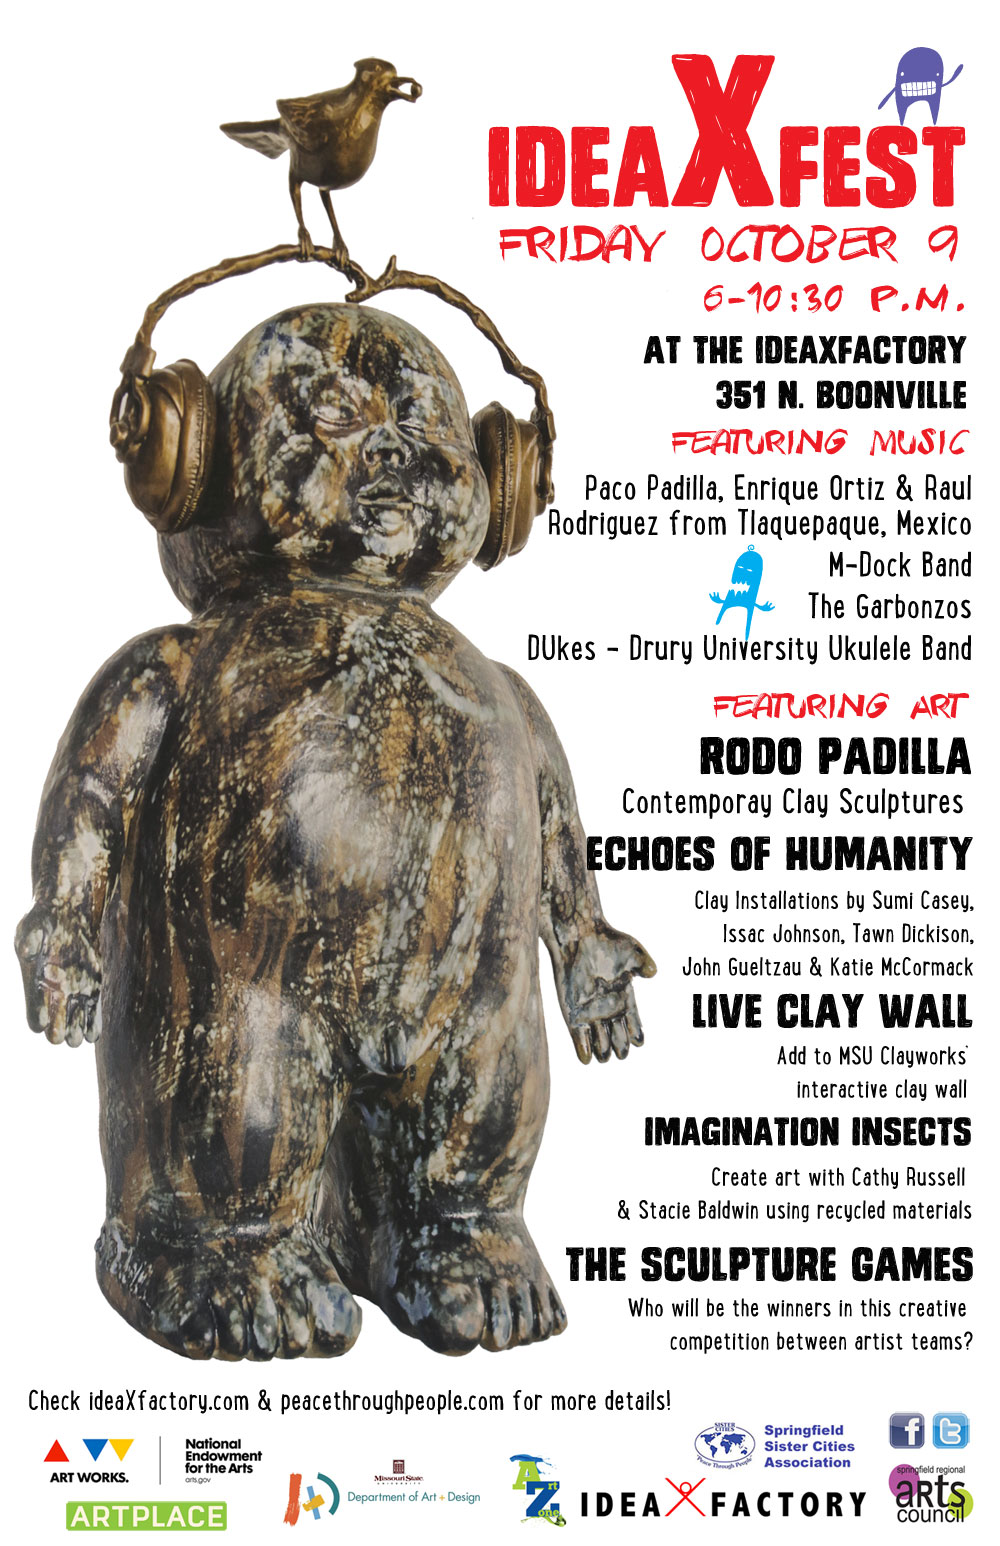 Visiting Tlaquepaque Musicians and Artist featured at idea-X-fest on Oct. 9